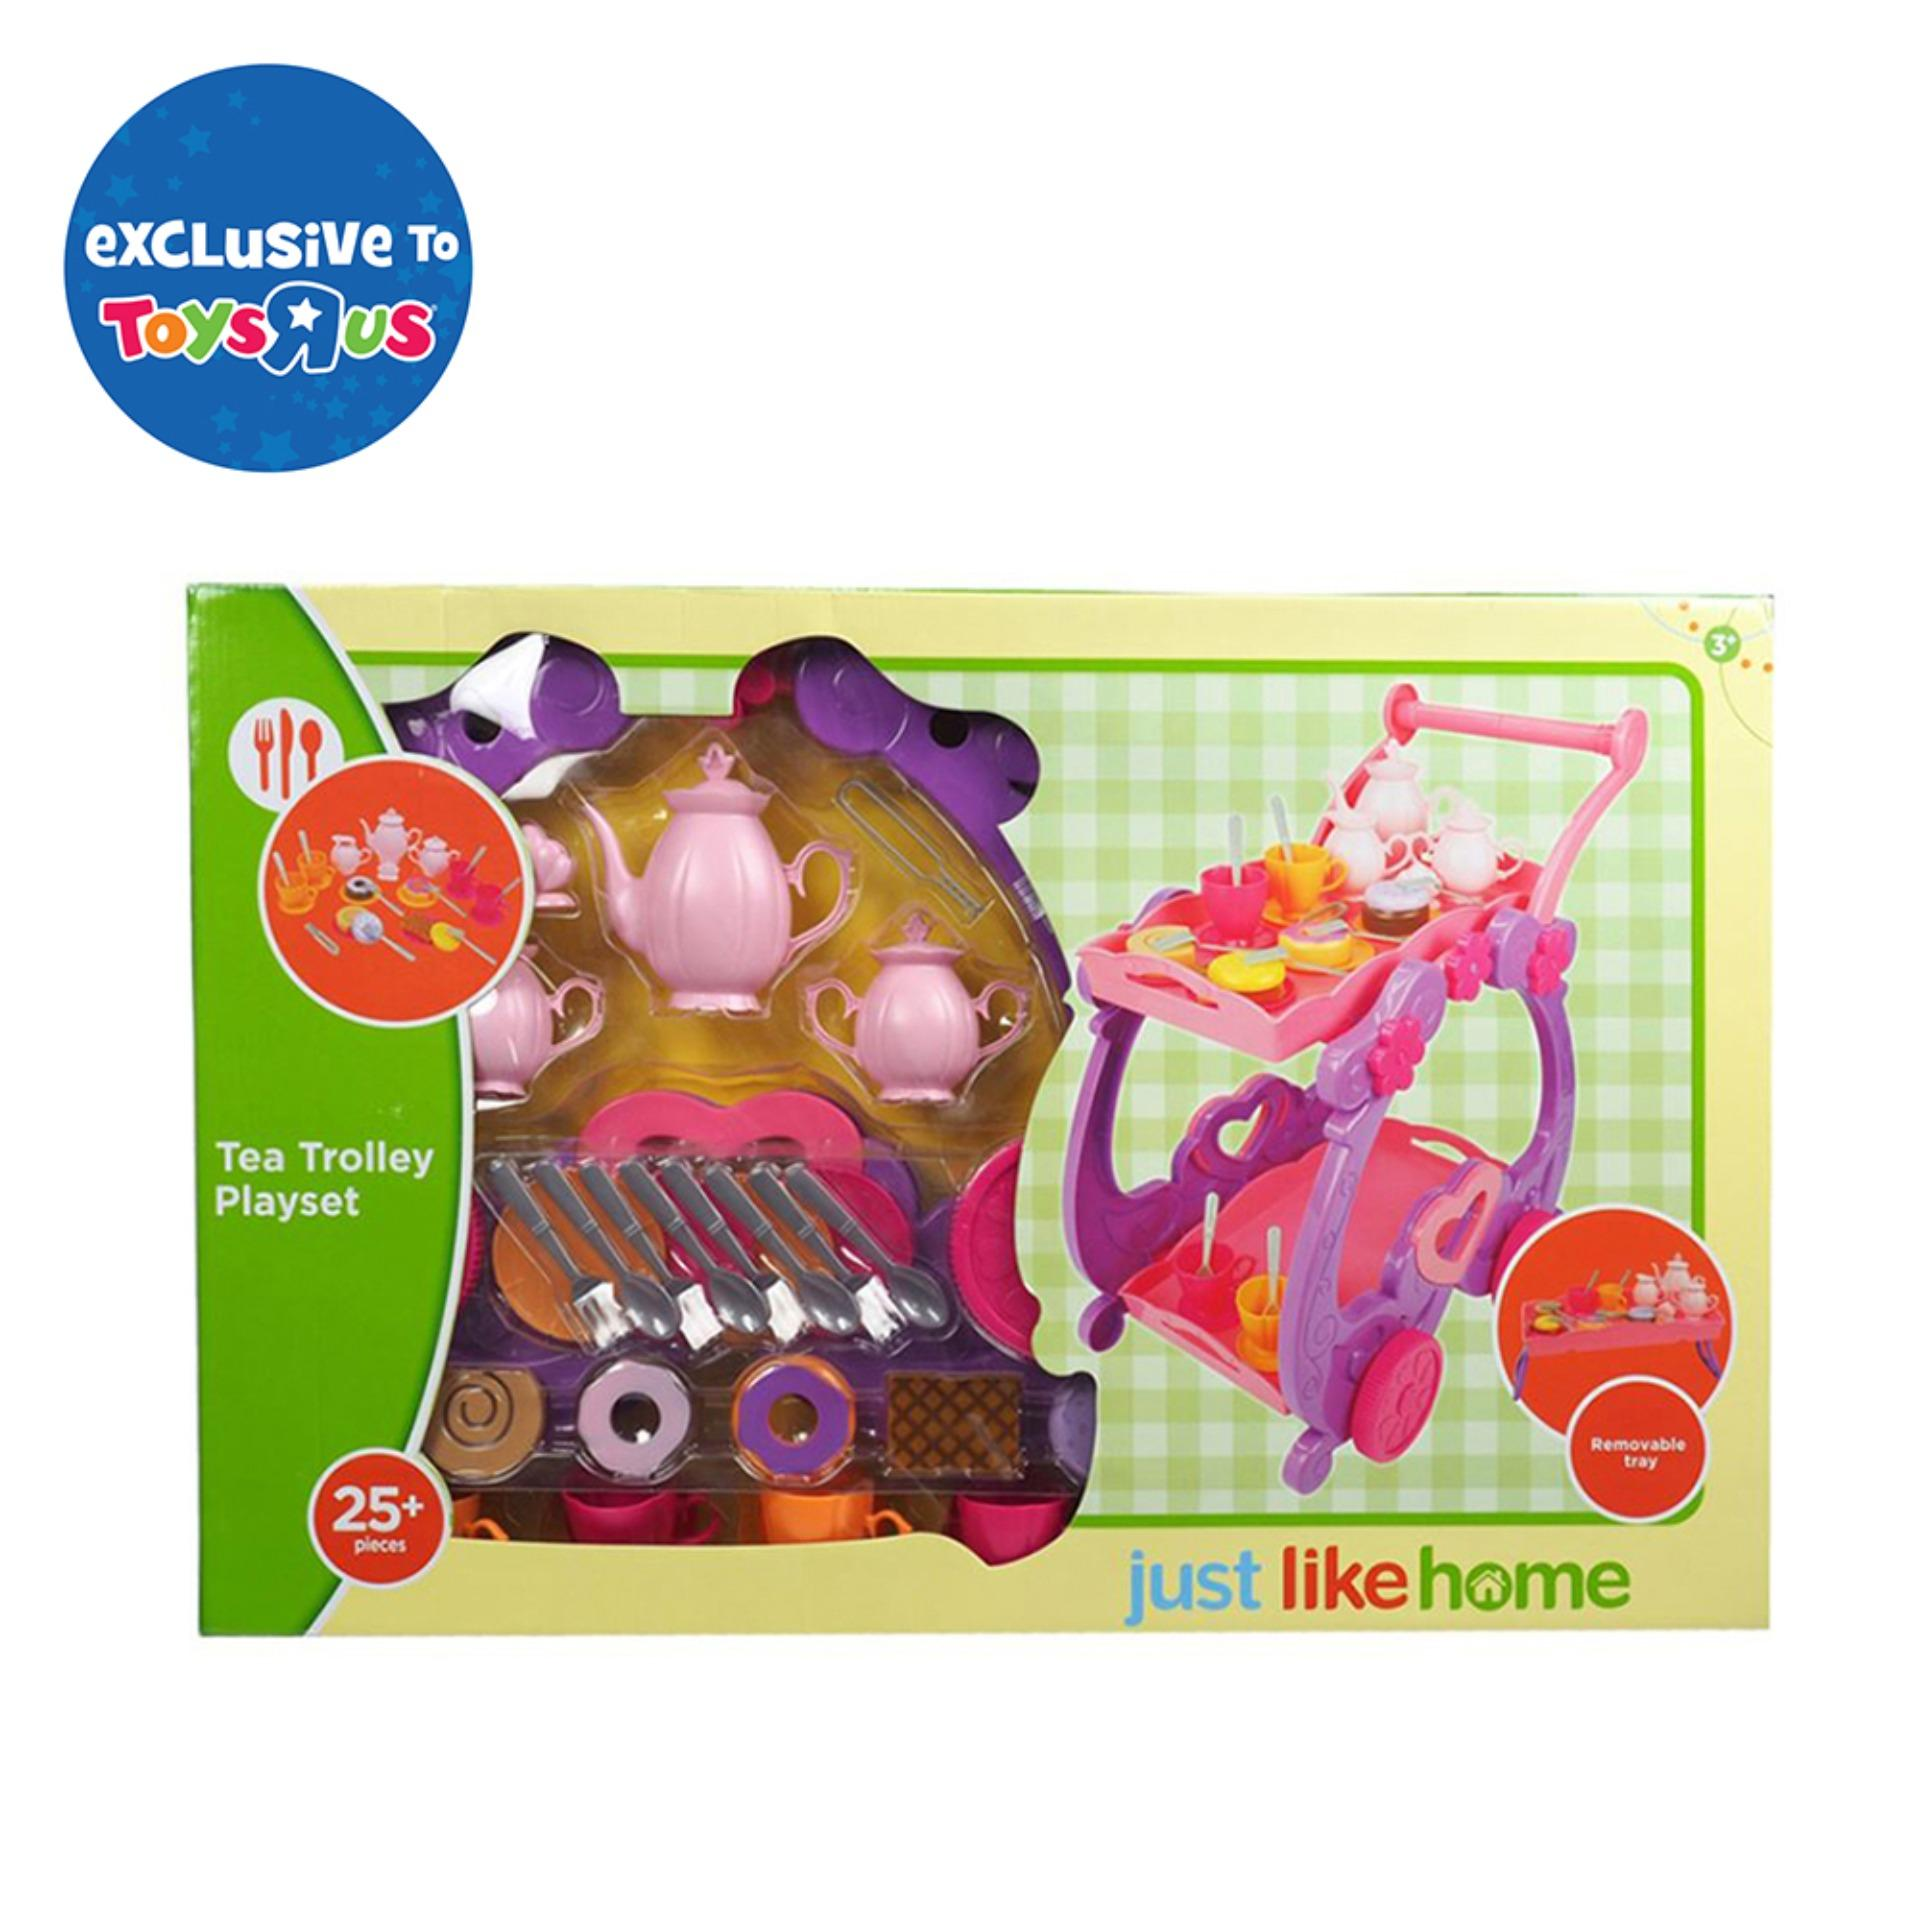 Just Like Home Trolley Playset